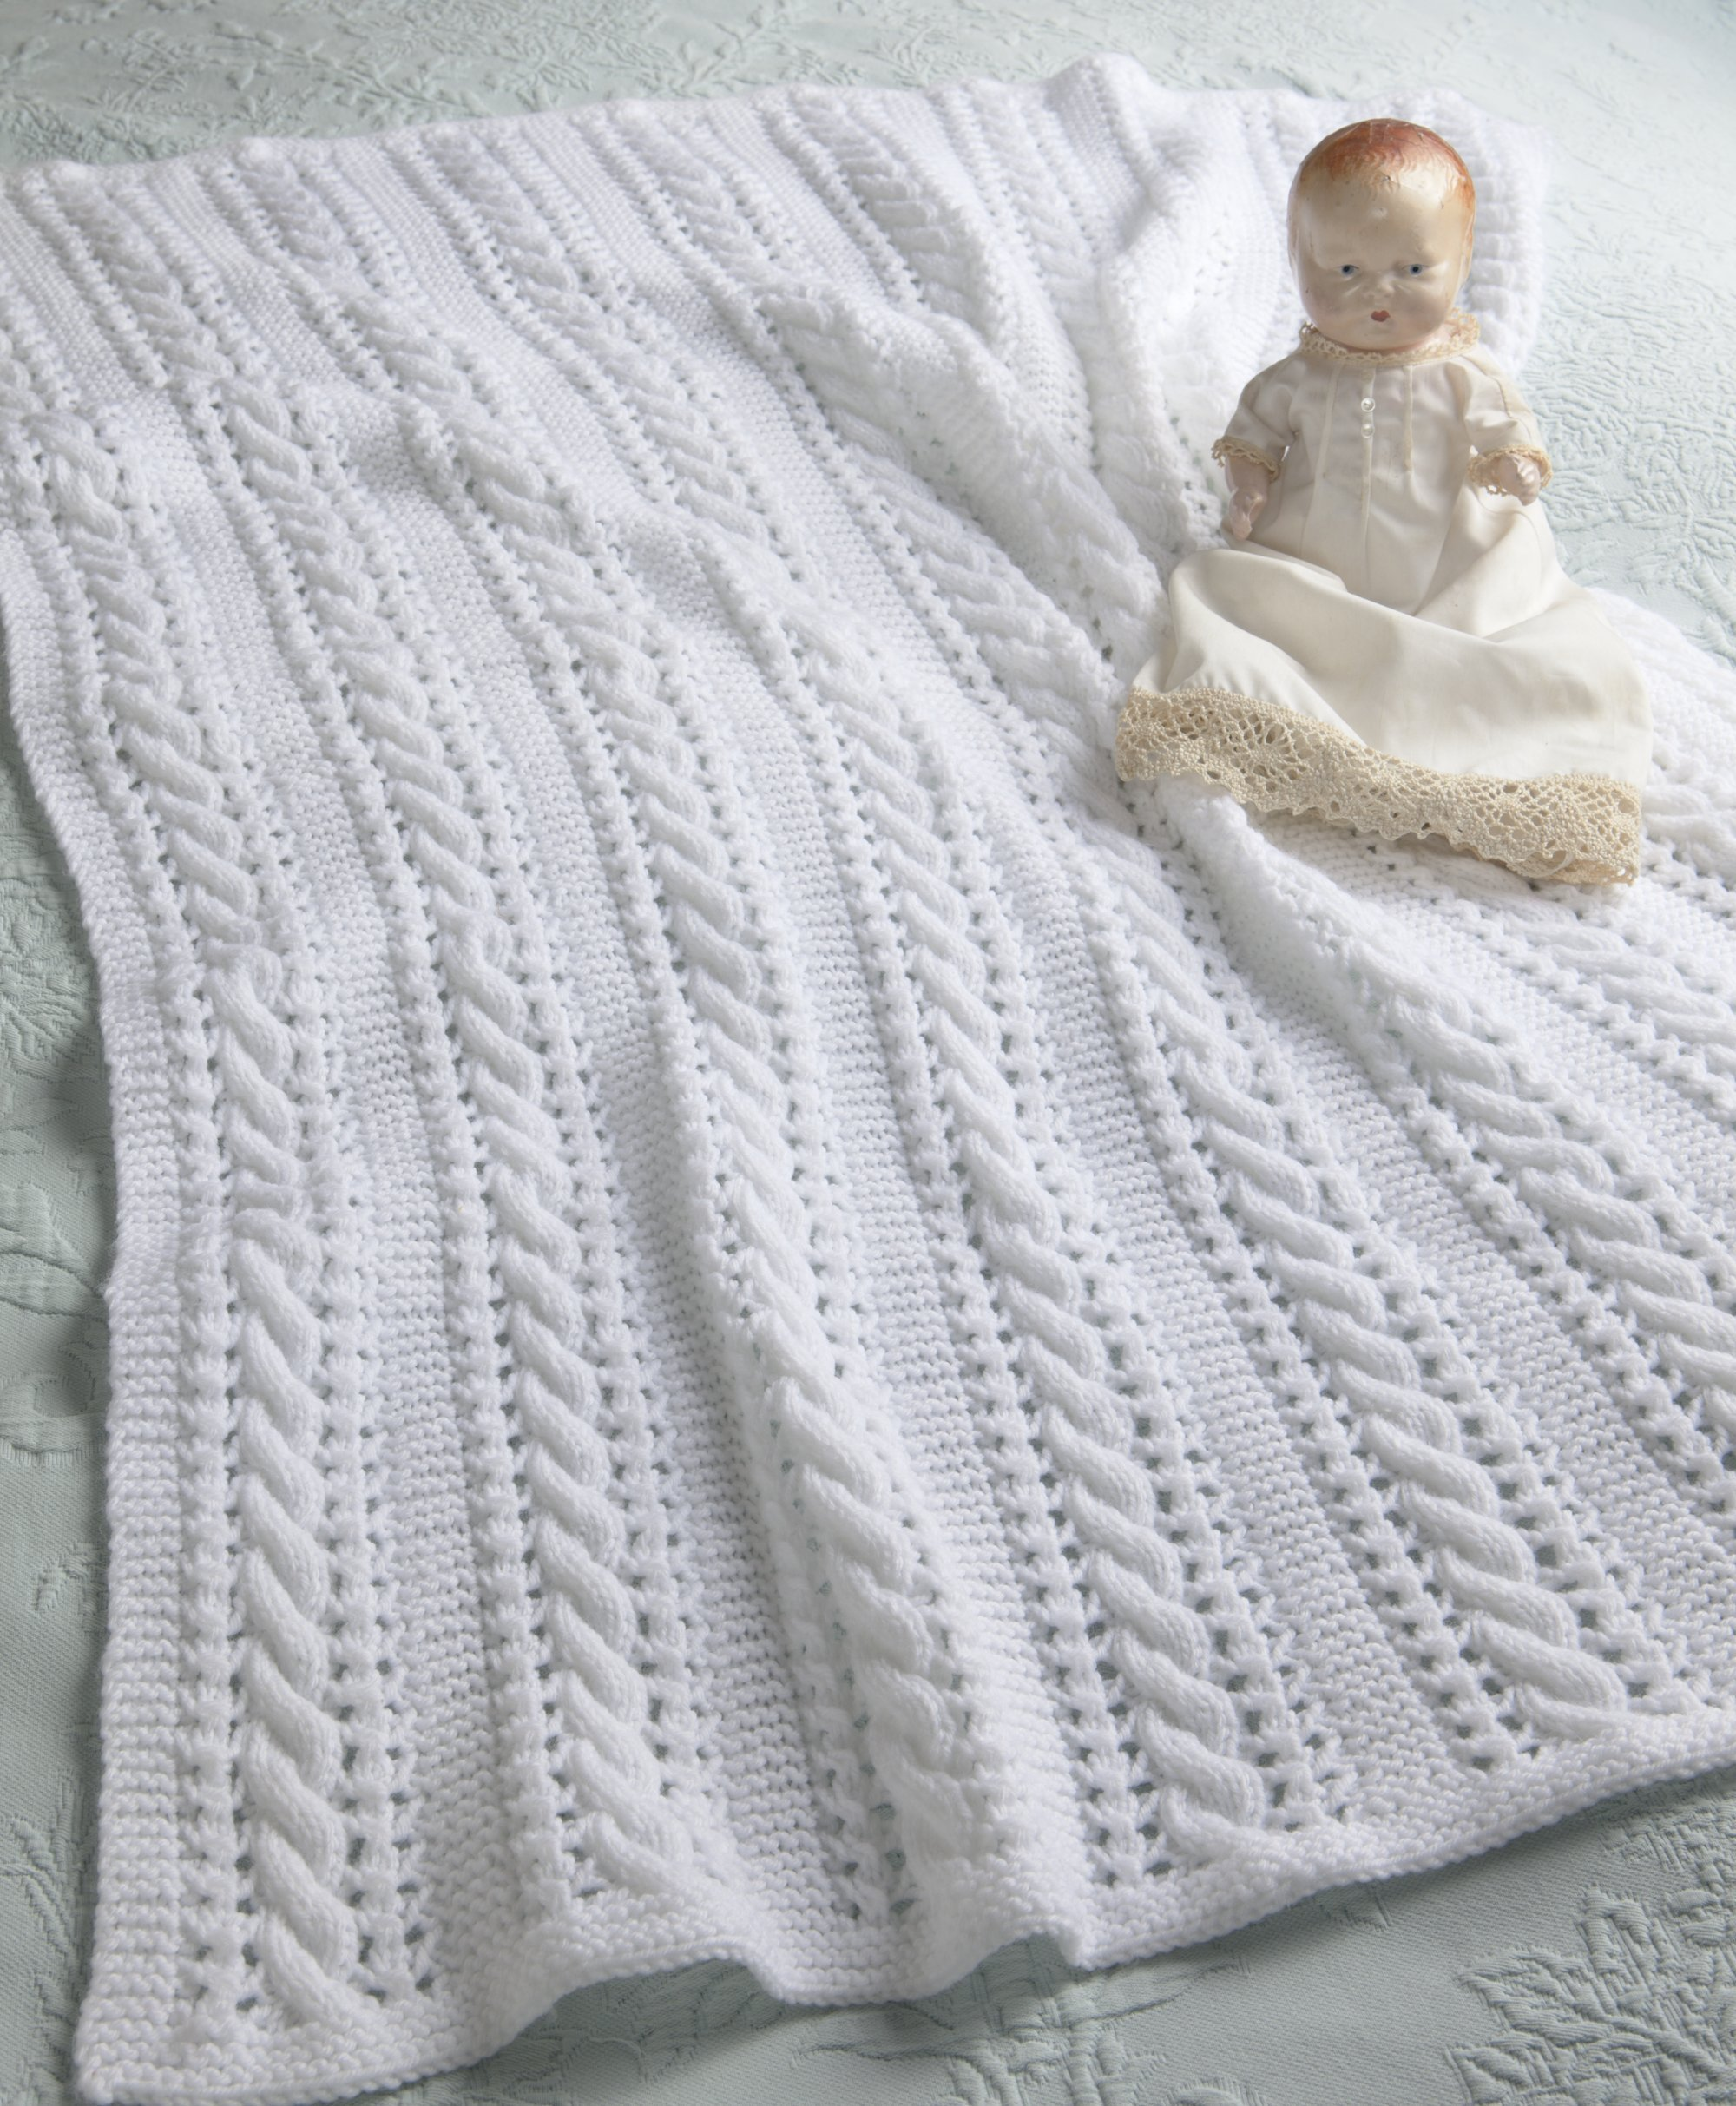 Grammy\'s Favorite Knits for Baby: Doreen L. Marquart: 9781604680300 ...